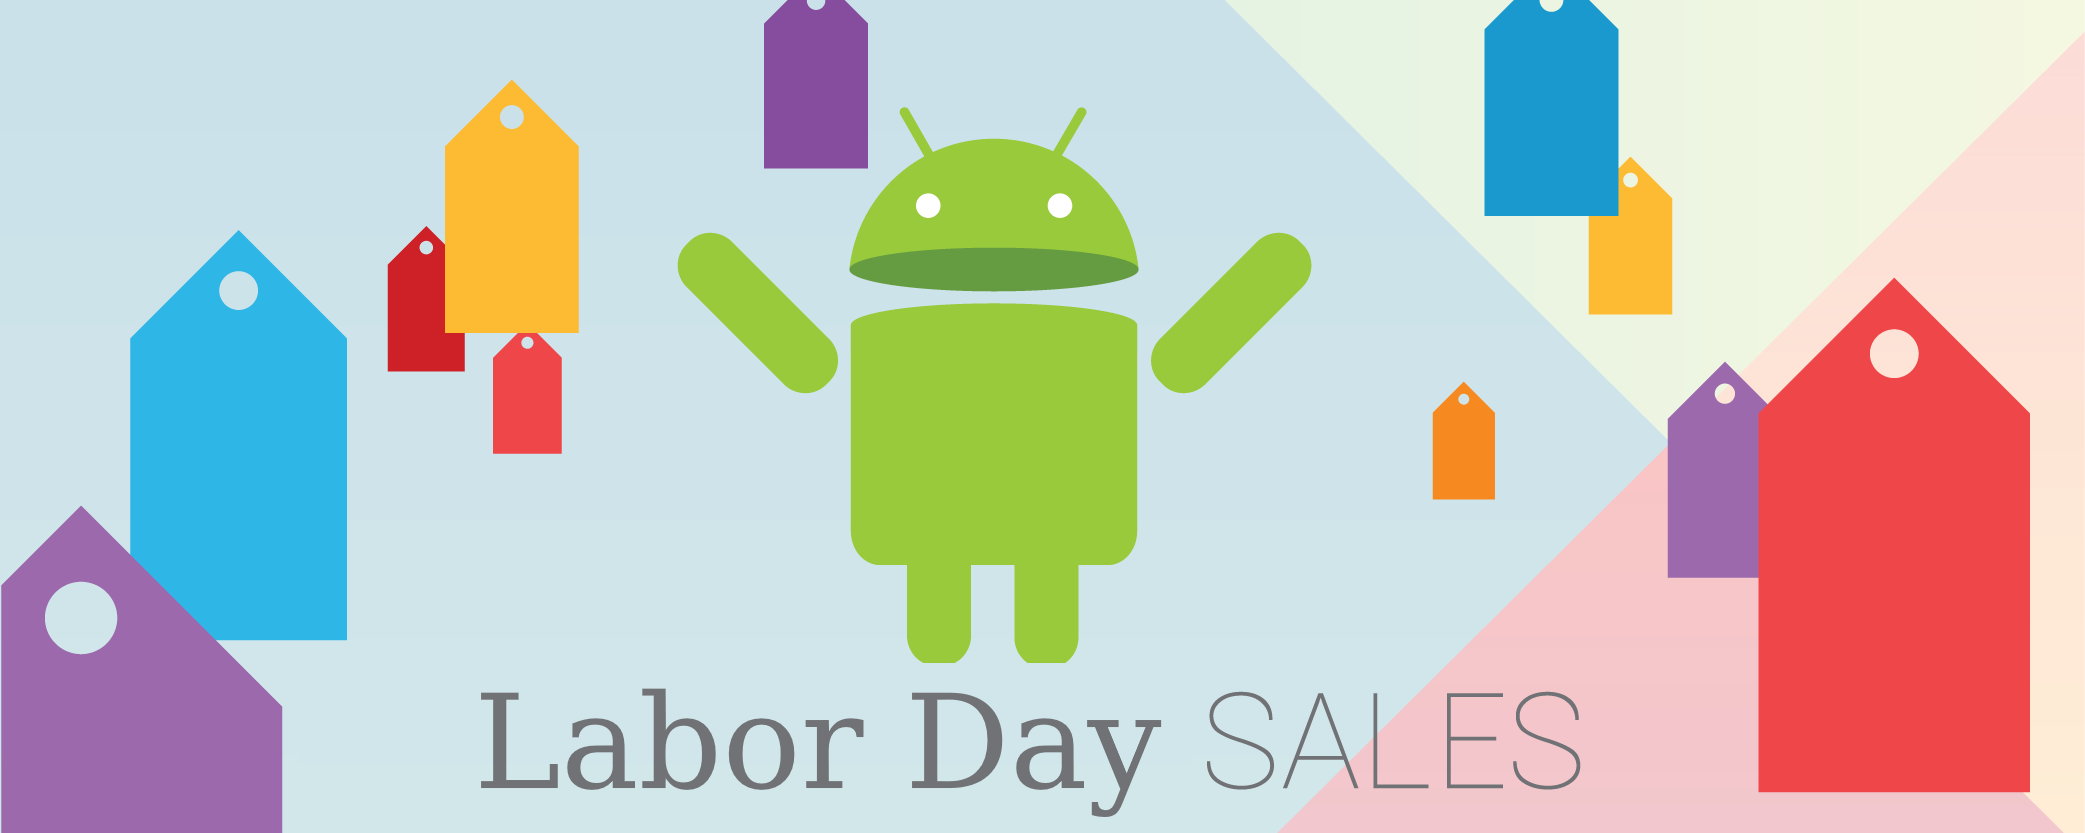 44 temporarily free and 53 on-sale apps and games for Labor Day